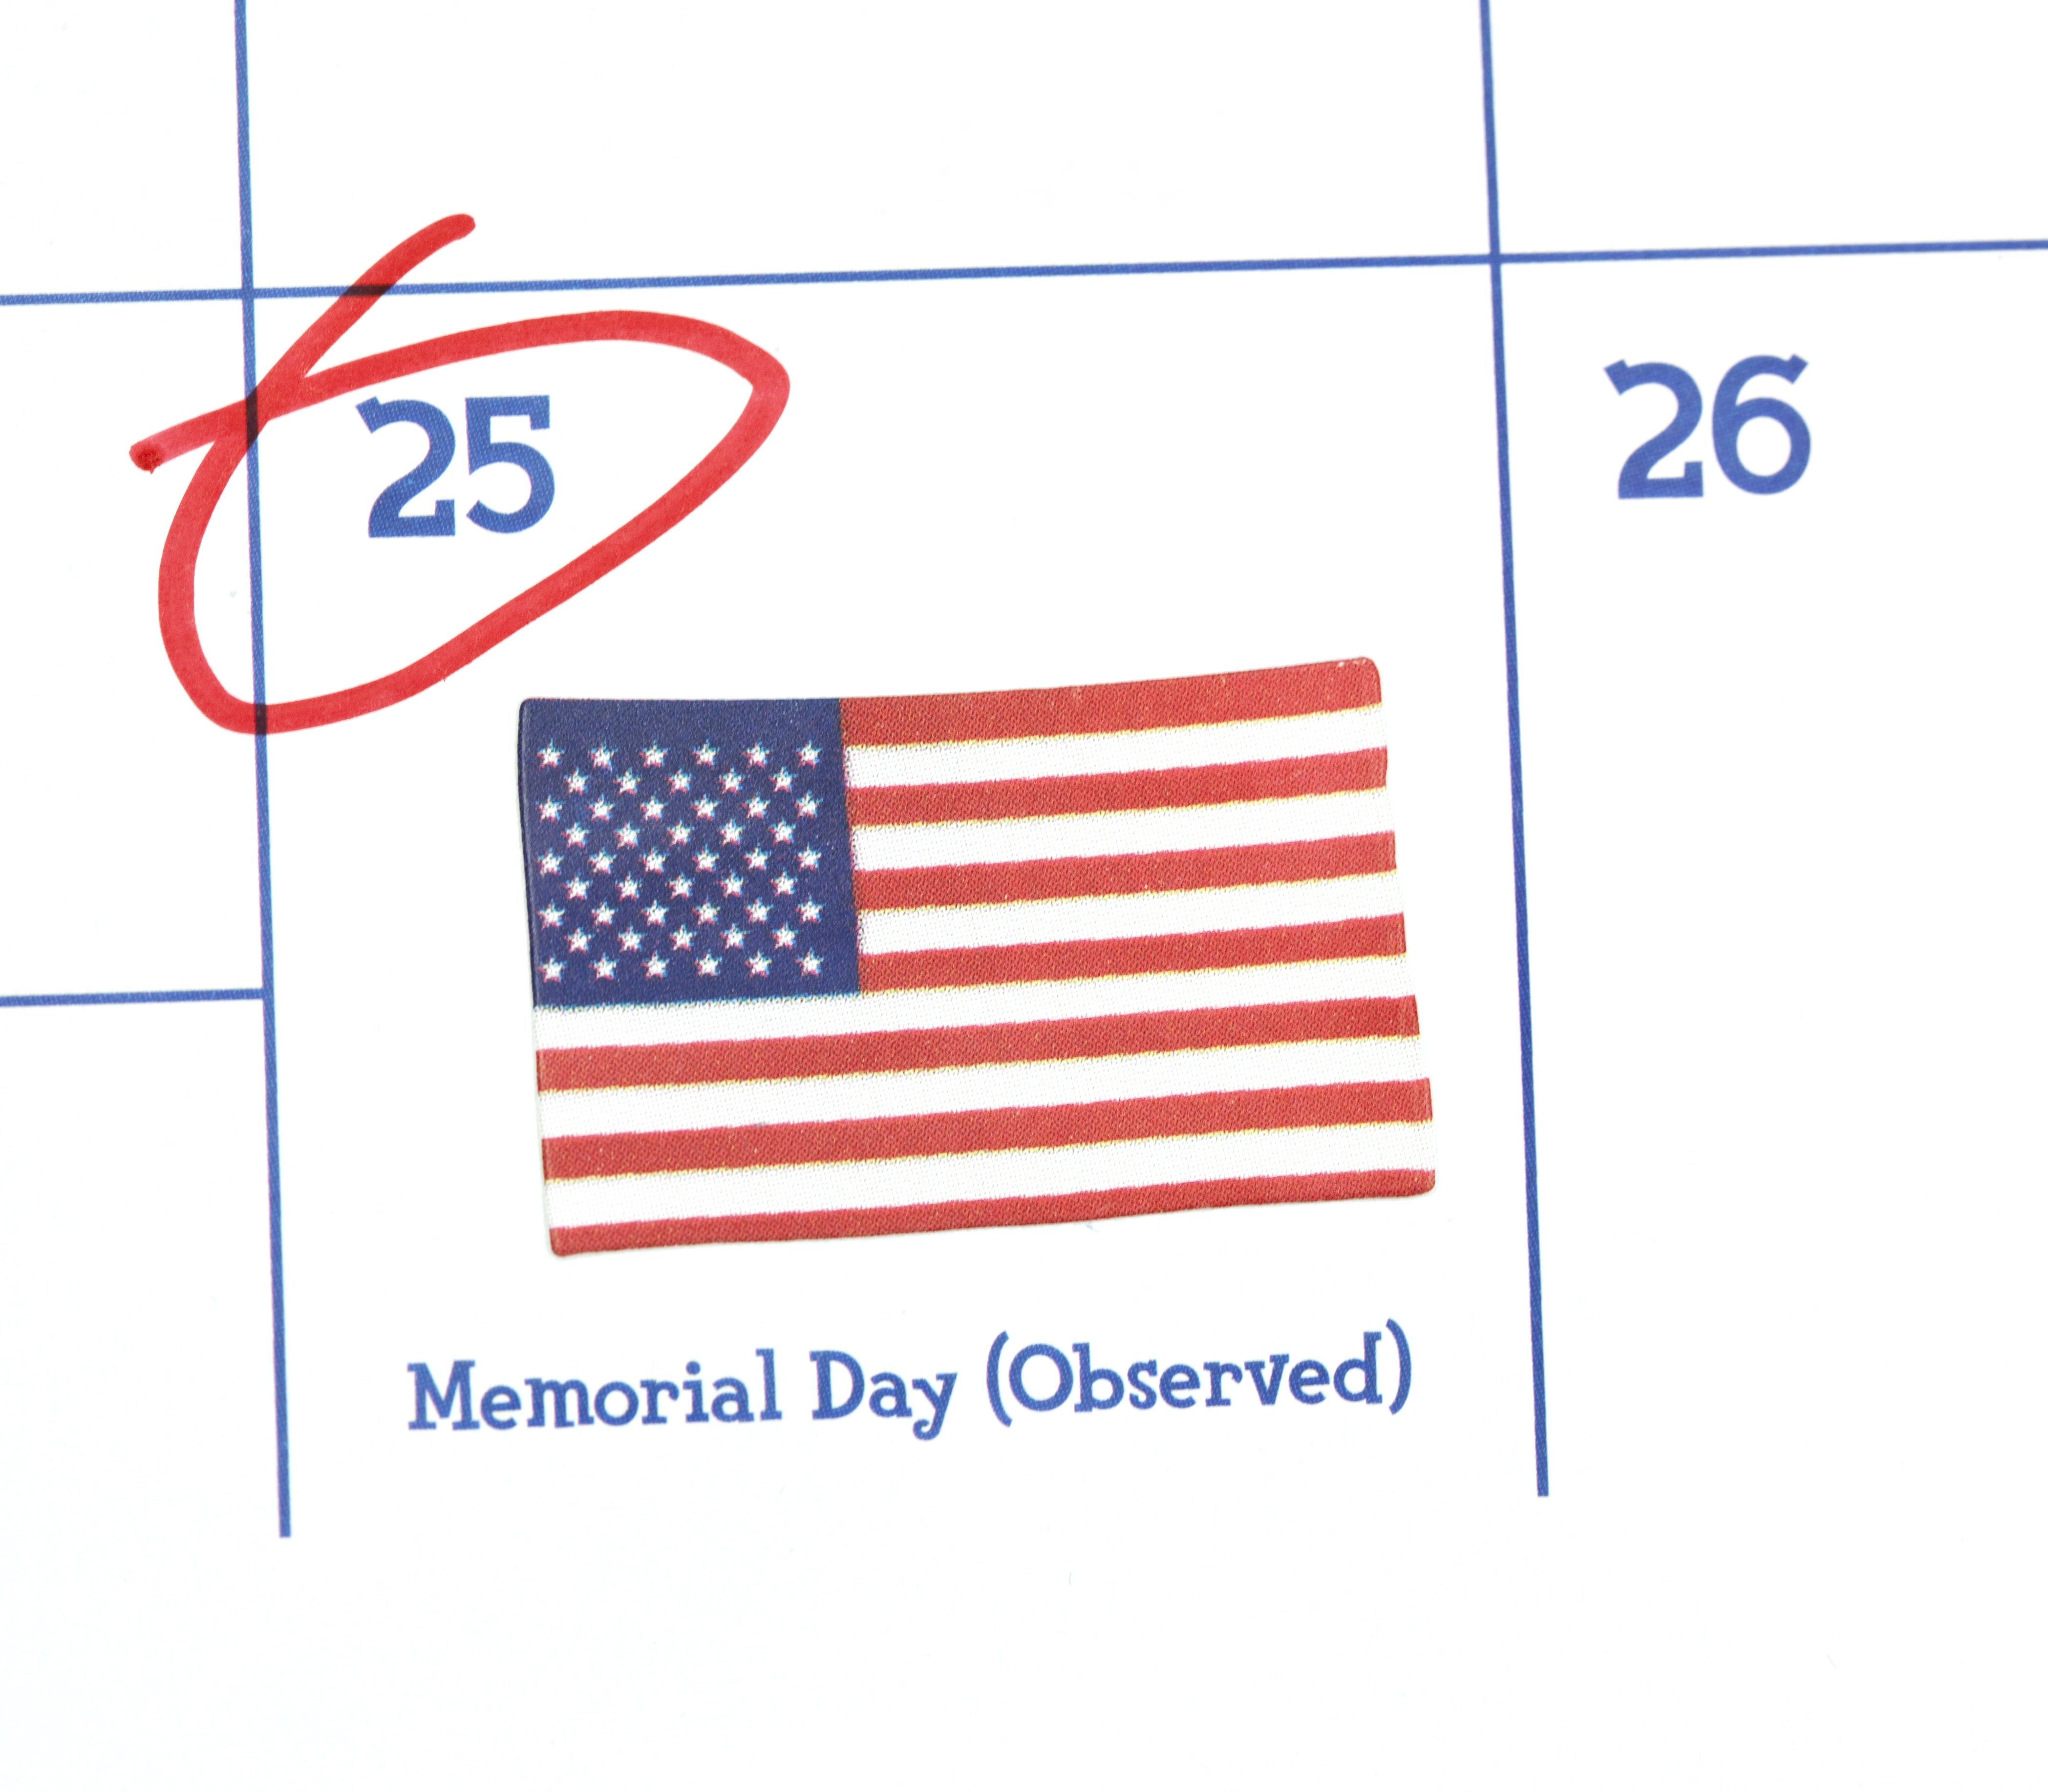 5 Facts You May Not Know About Memorial Day